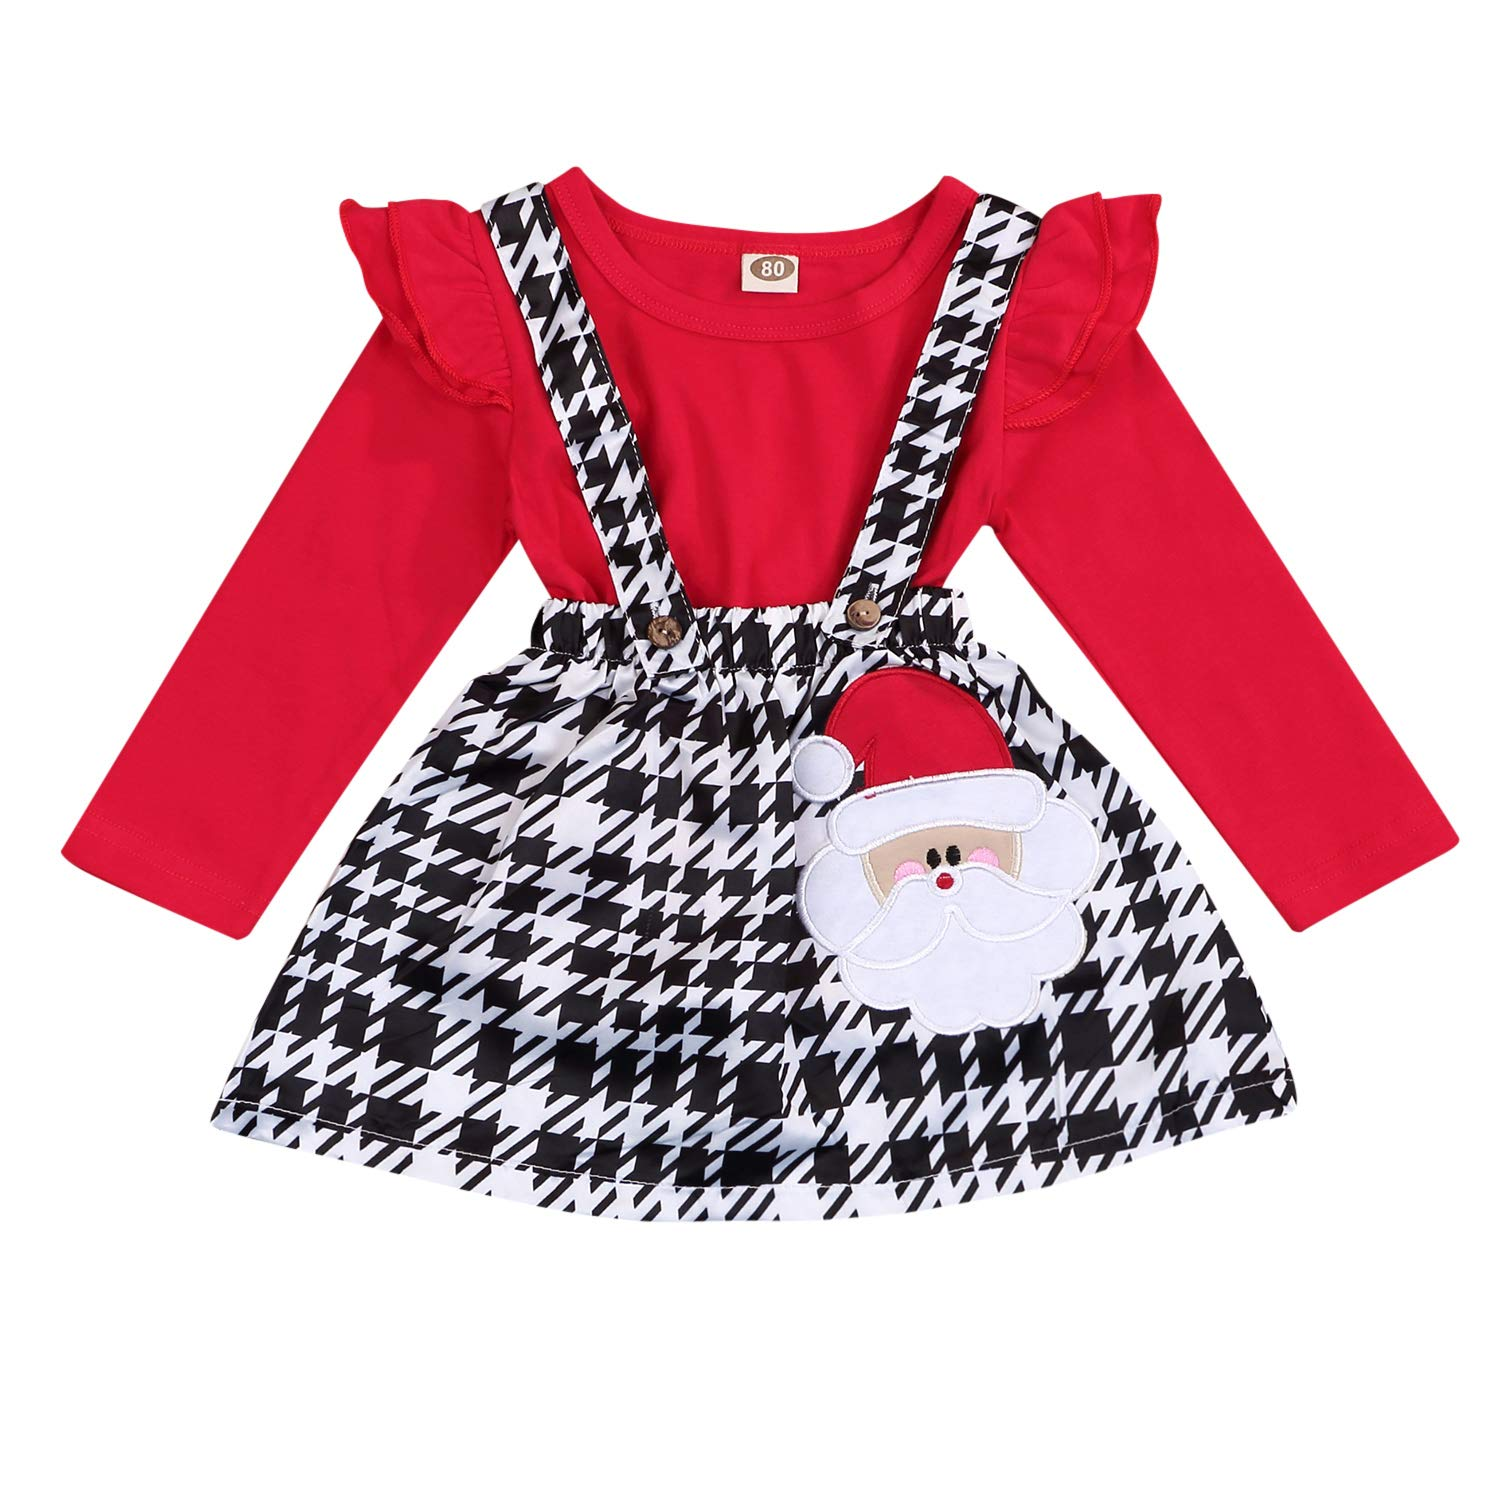 Christmas Infant Toddler Baby Girls Outfits Snowman Santa Claus Print Ruffle T-Shirt Strap Dress Sets (red Sets, 6-12 Months)